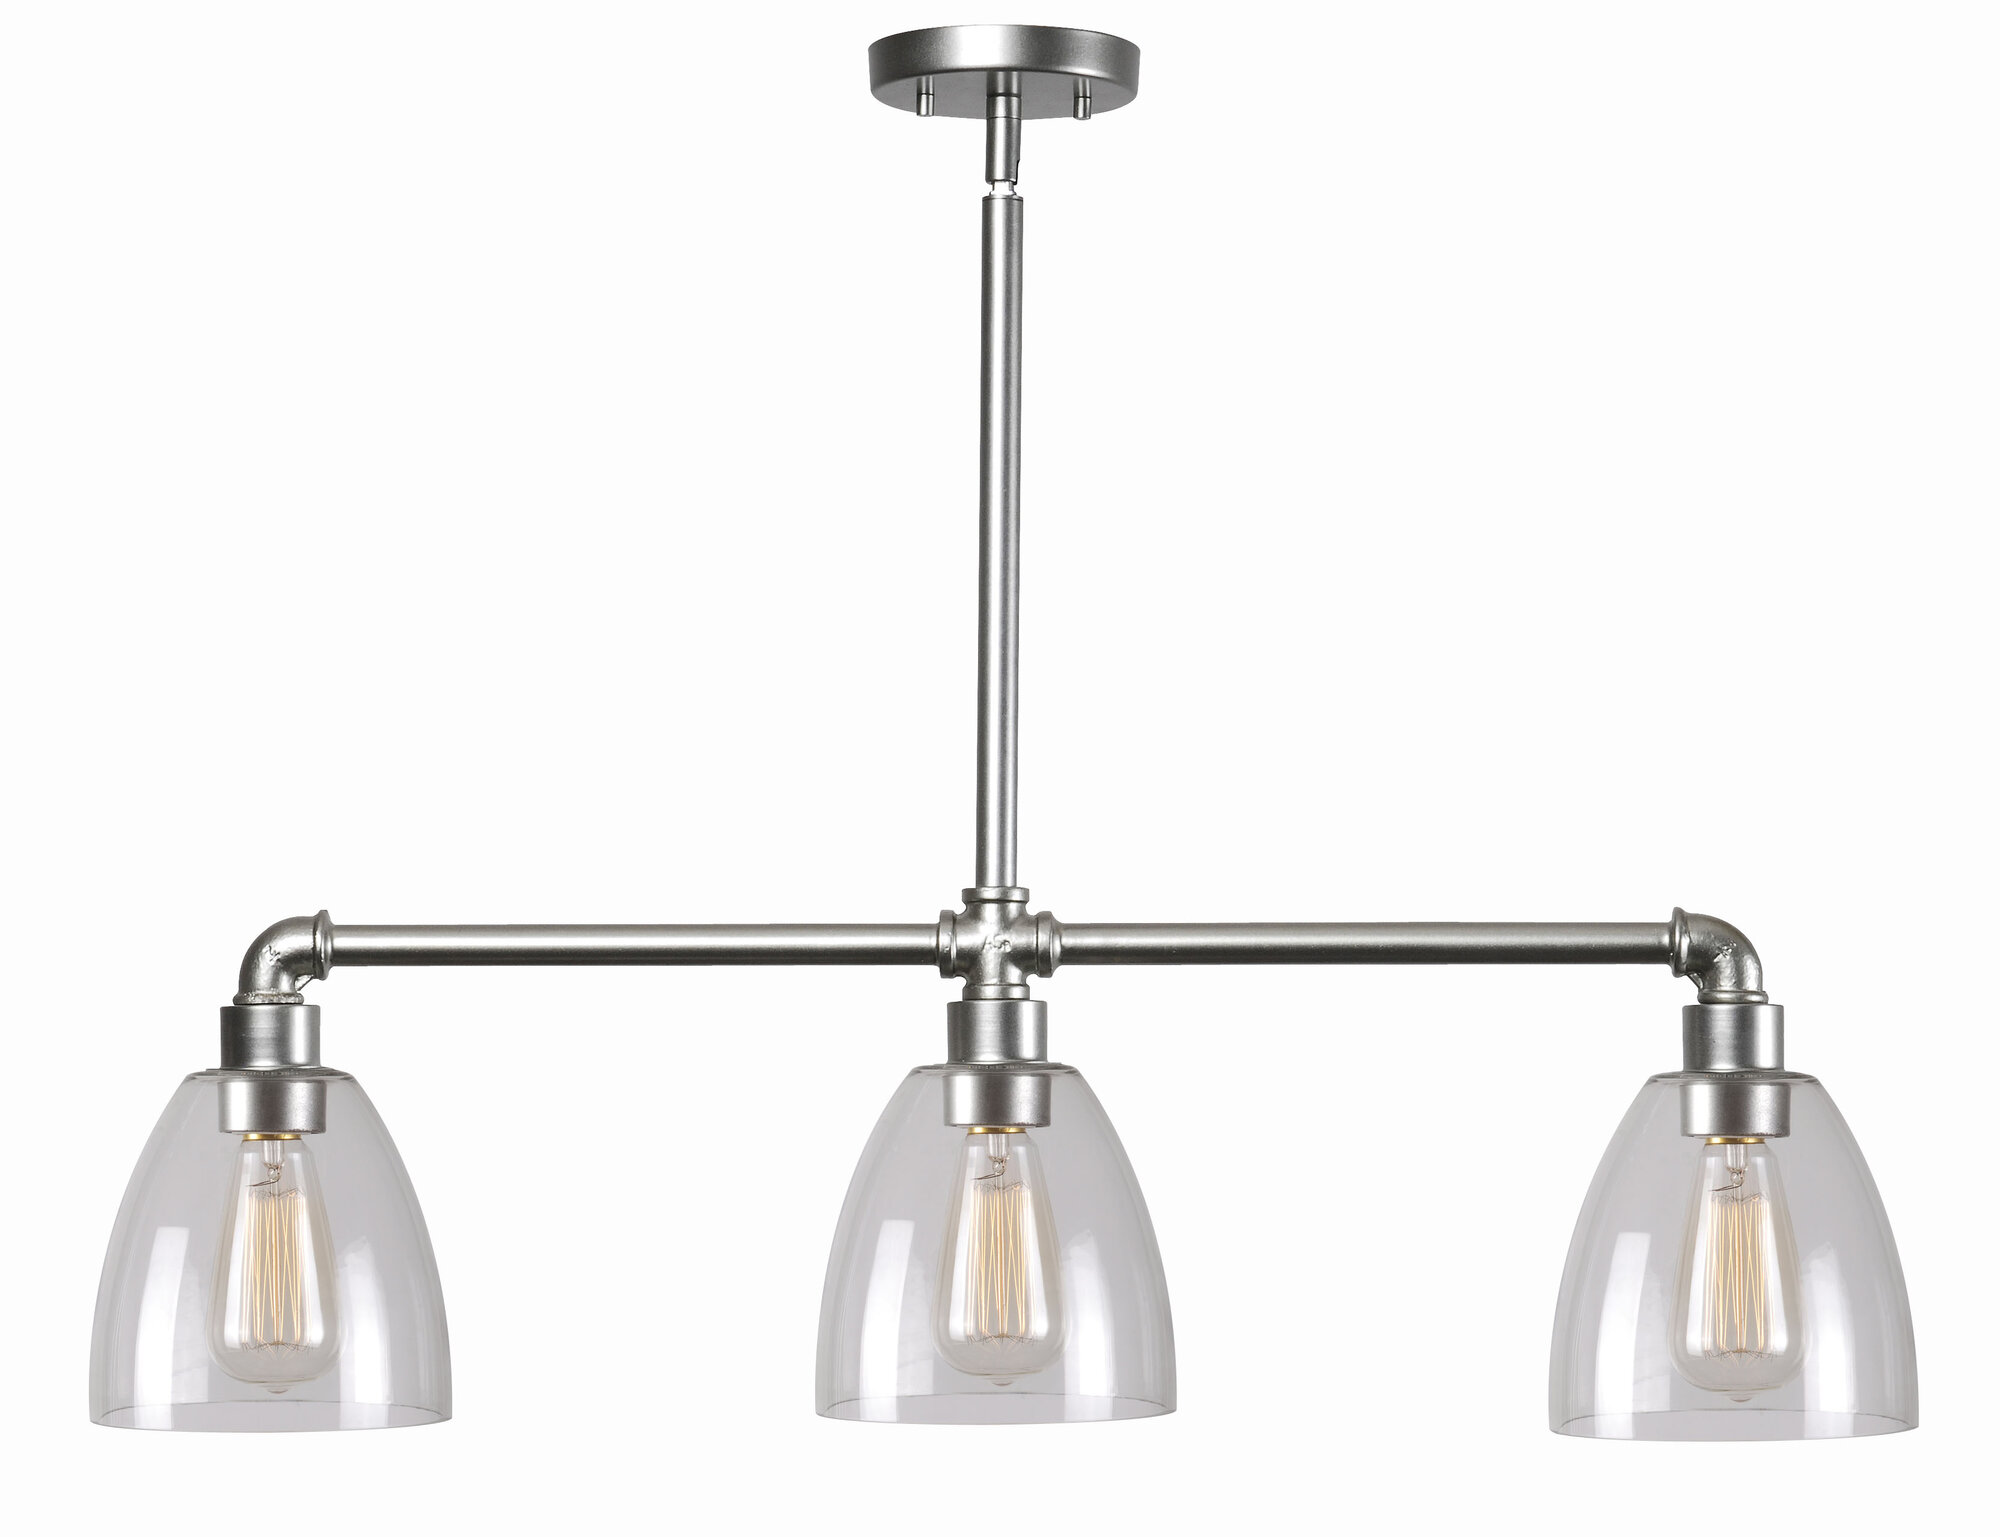 Wildon Home Industrial Fitter 3 Light Kitchen Island Pendant Ebay